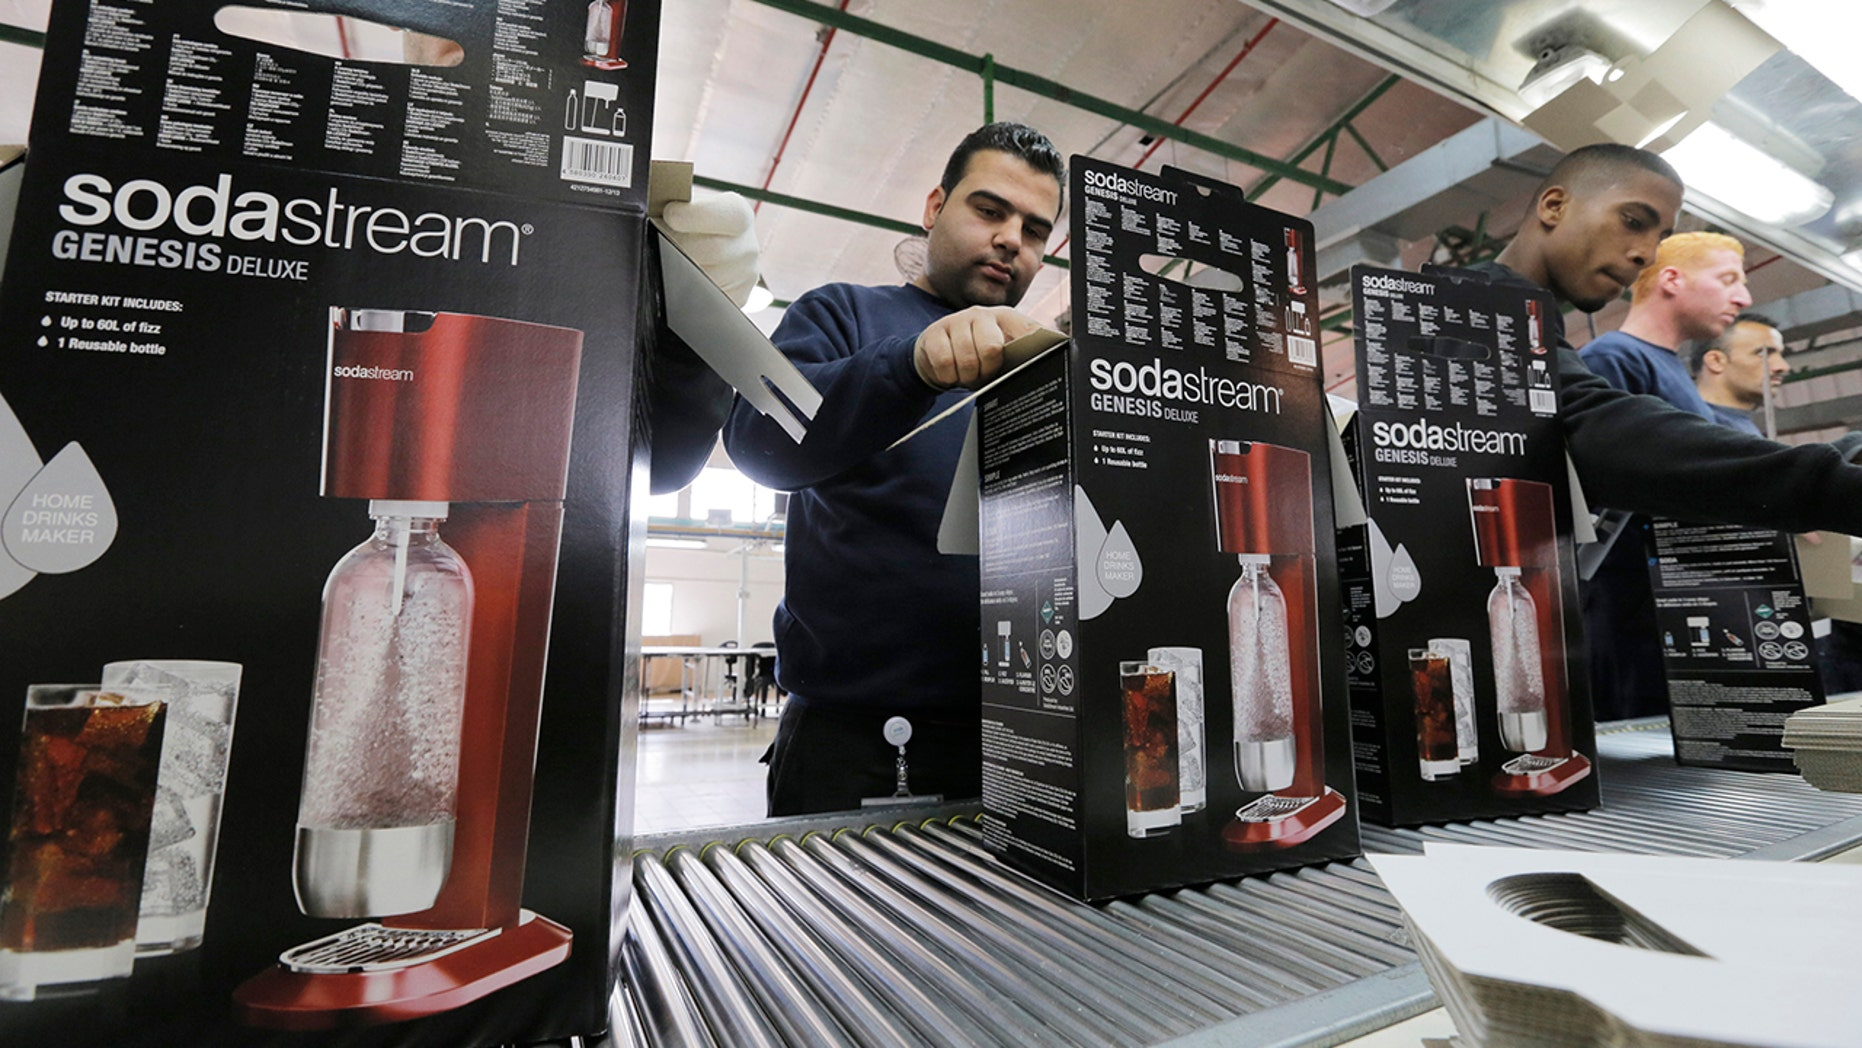 Sodastream is rolling out a new alcoholic offering just in time for Christmas.